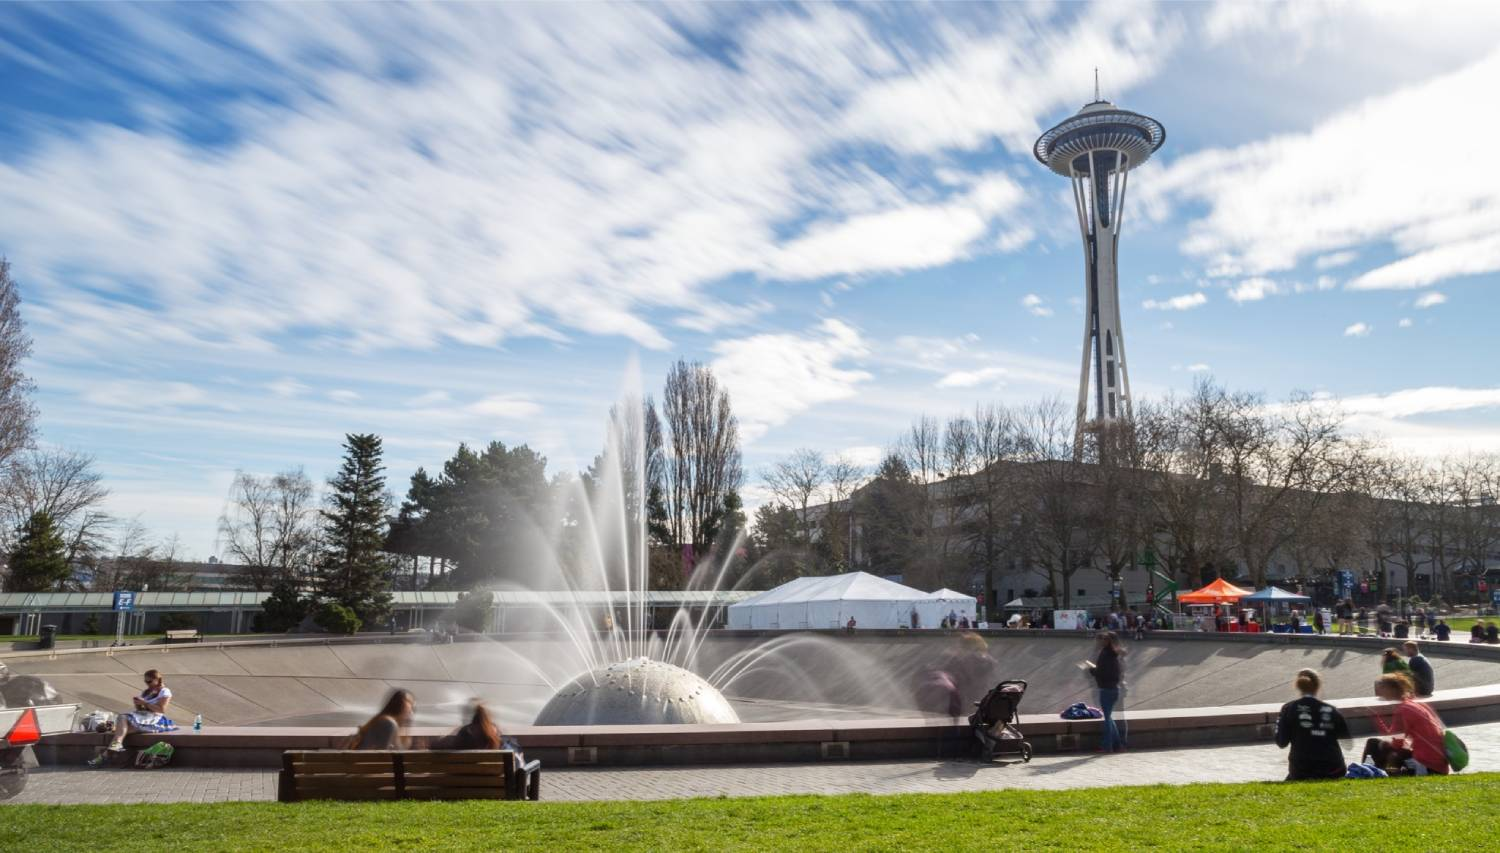 Seattle Center - Things To Do In Seattle